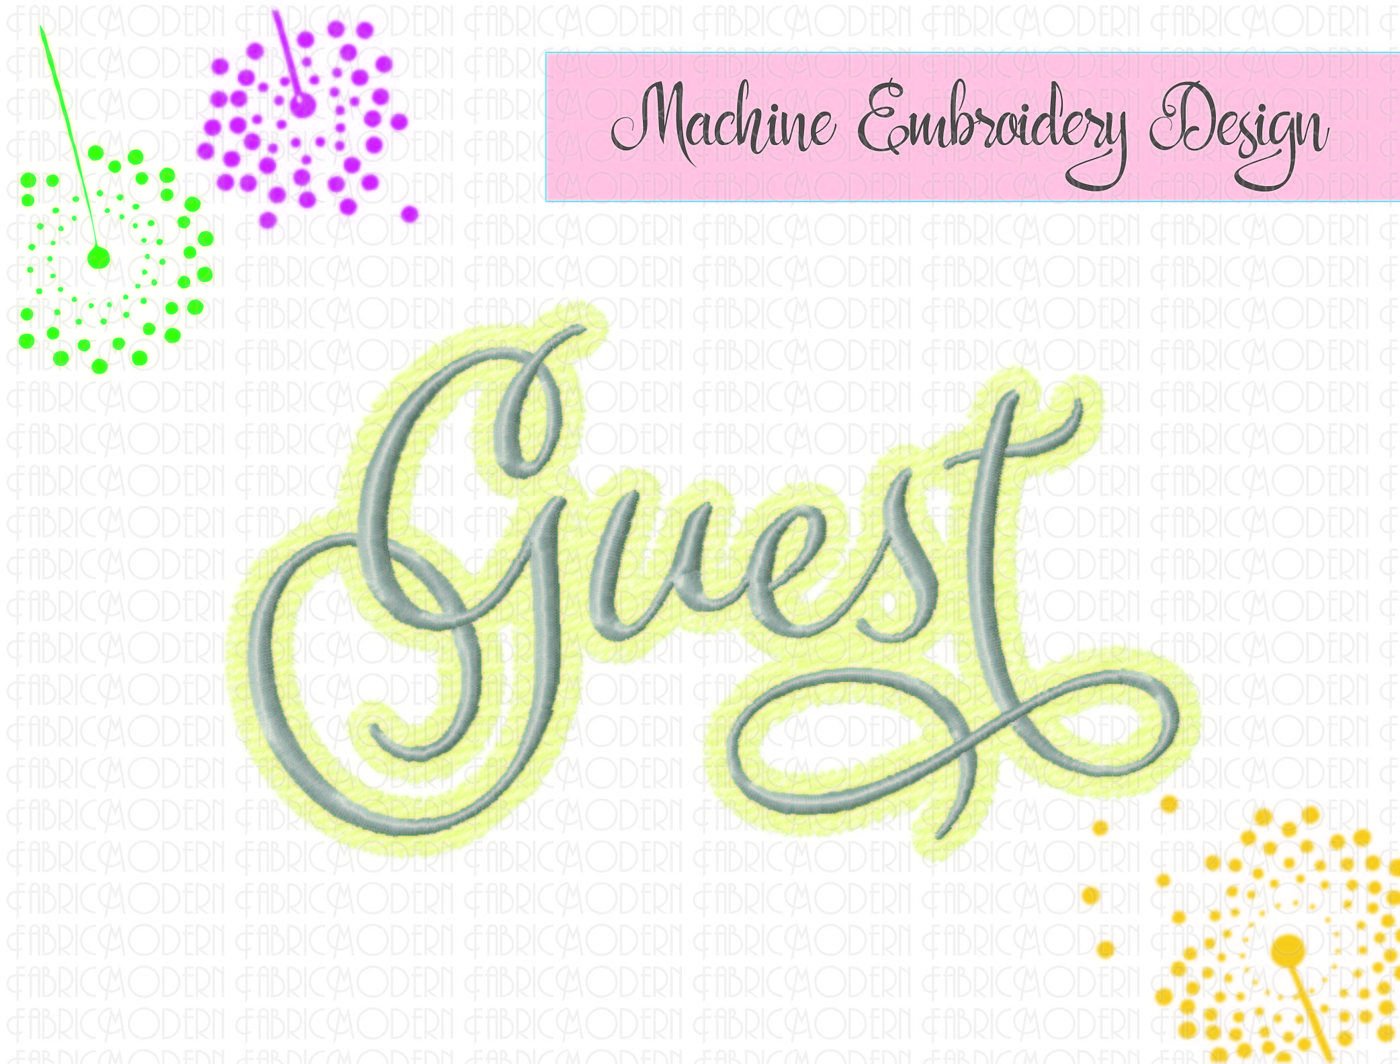 Guest Towel Design Embroidery Design Guest Towel Embroidery Fancy Script With Flourishes Six Sizes Wedding Linens 891 By Fabricmodern Thehungryjpeg Com